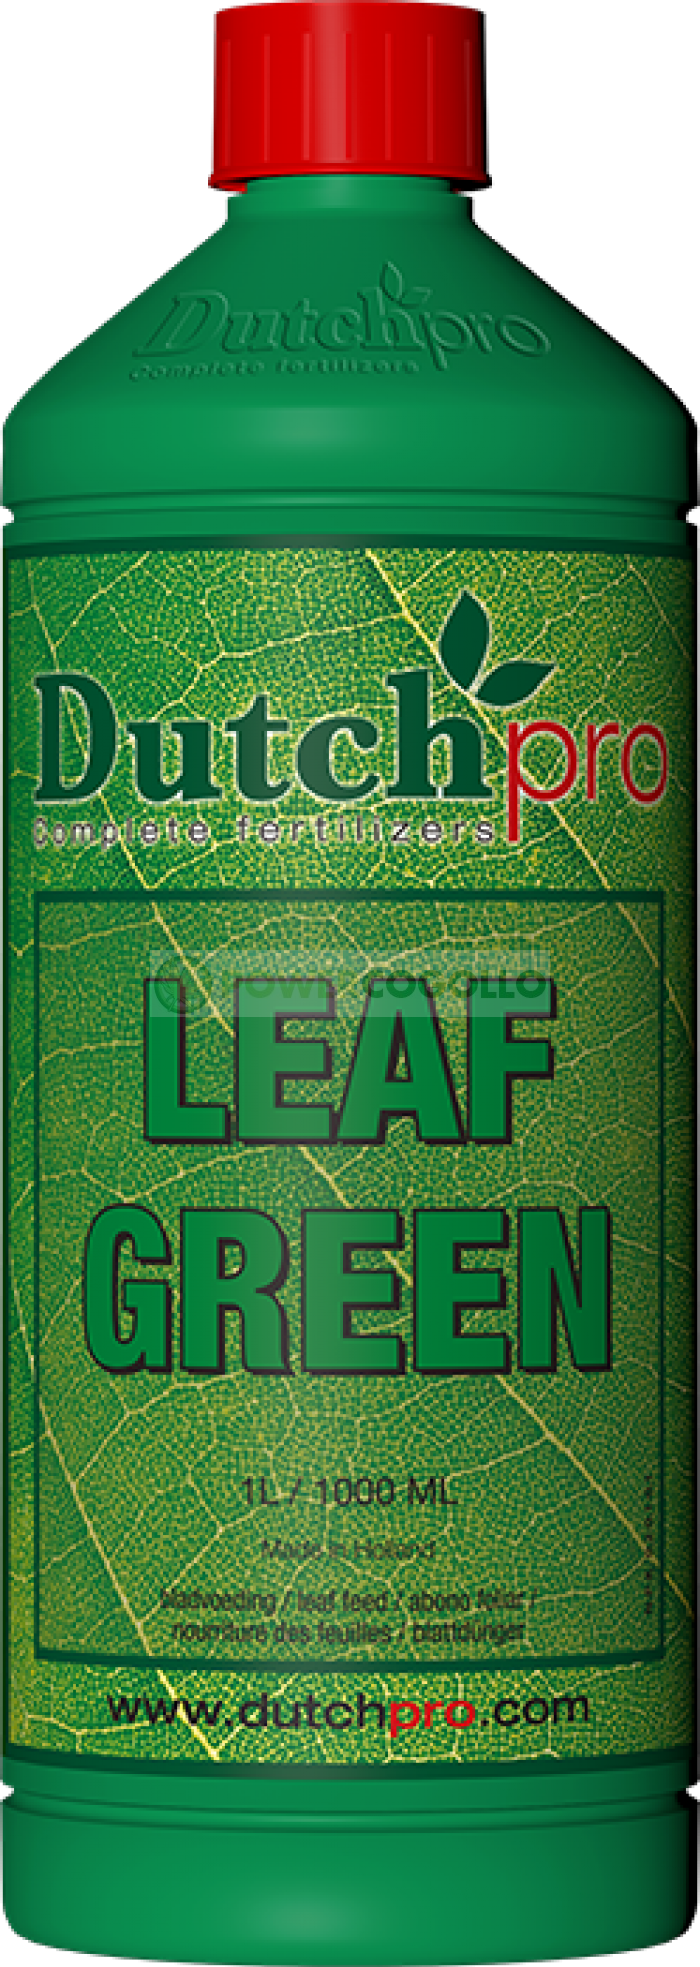 Leaf Green (Dutch Pro) abono foliar Cannabis,